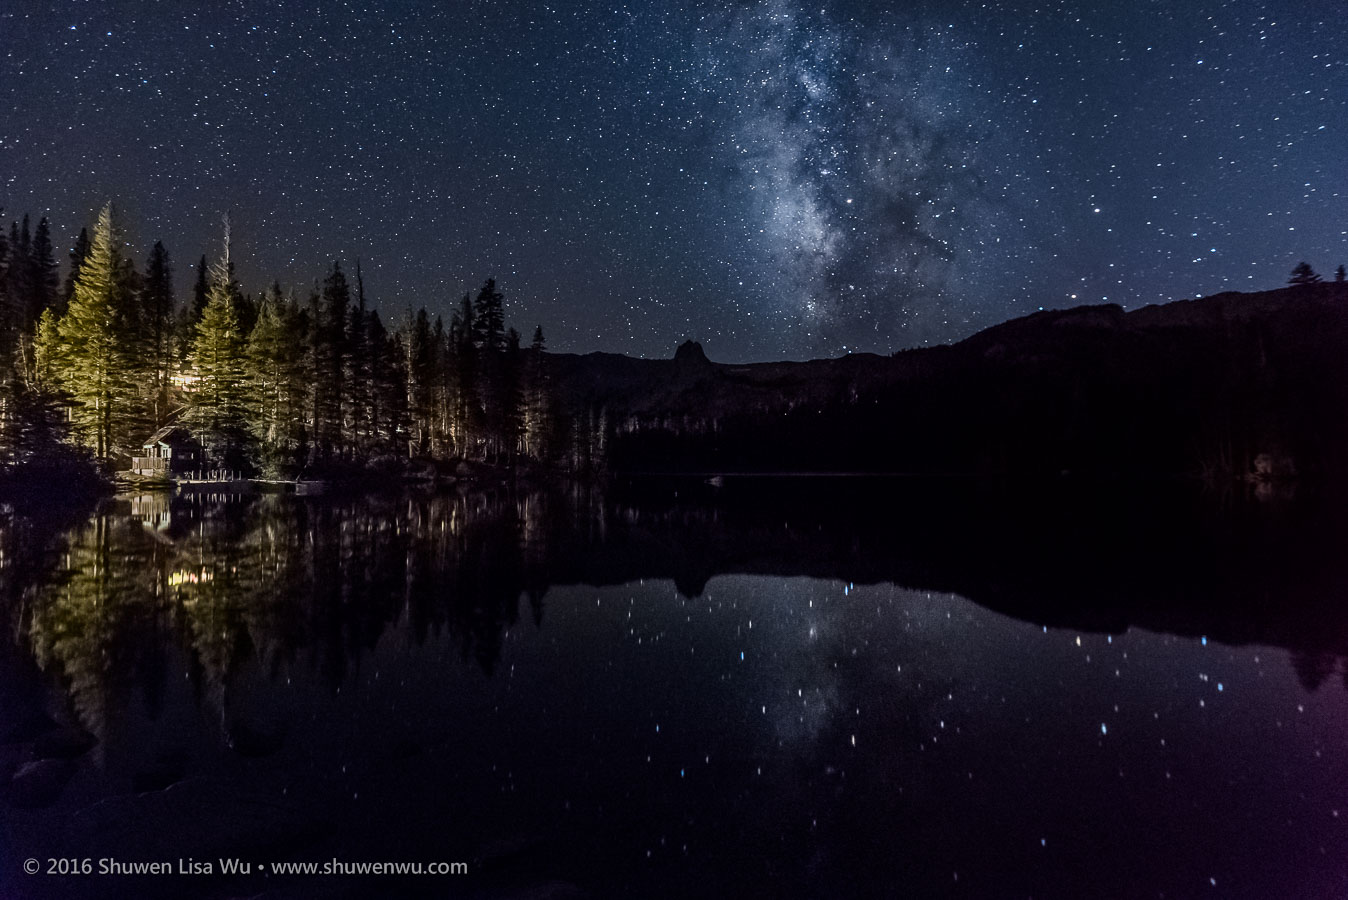 Stars and Milky Way reflect in Lake Mamie at night, Mammoth Lakes, California, September 2016.